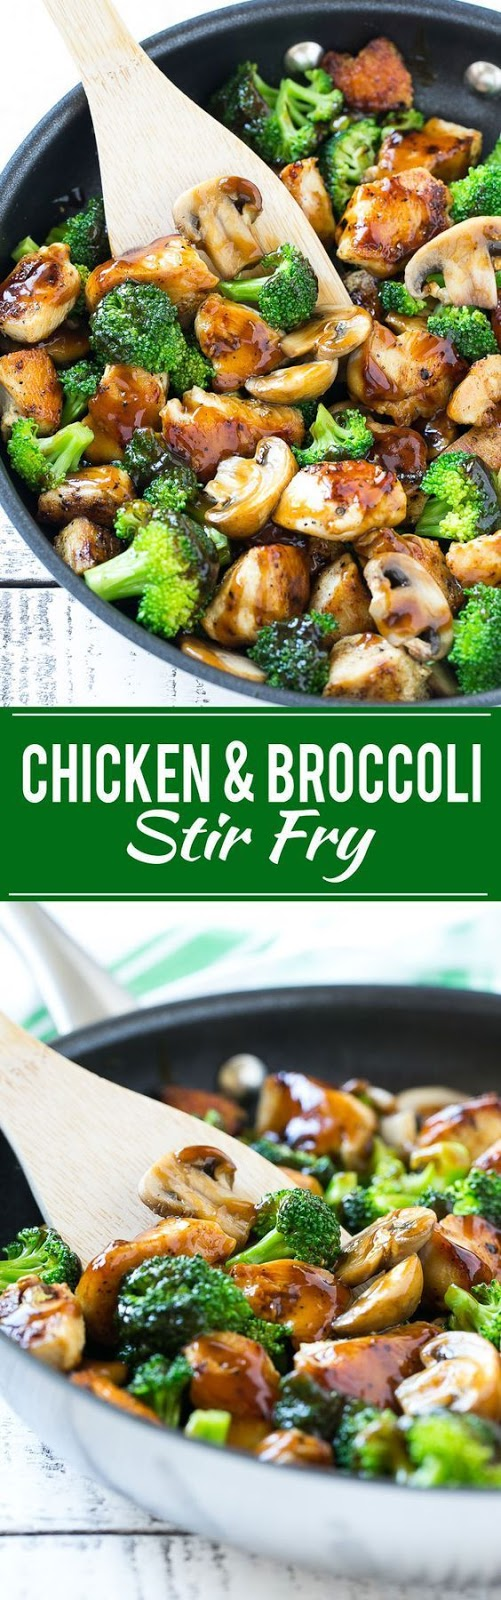 This recipe for chicken and broccoli stir fry is a classic dish of chicken sauteed with fresh broccoli florets and coated in a savory sauce. You can have a healthy and easy dinner on the table in less than 30 minutes!